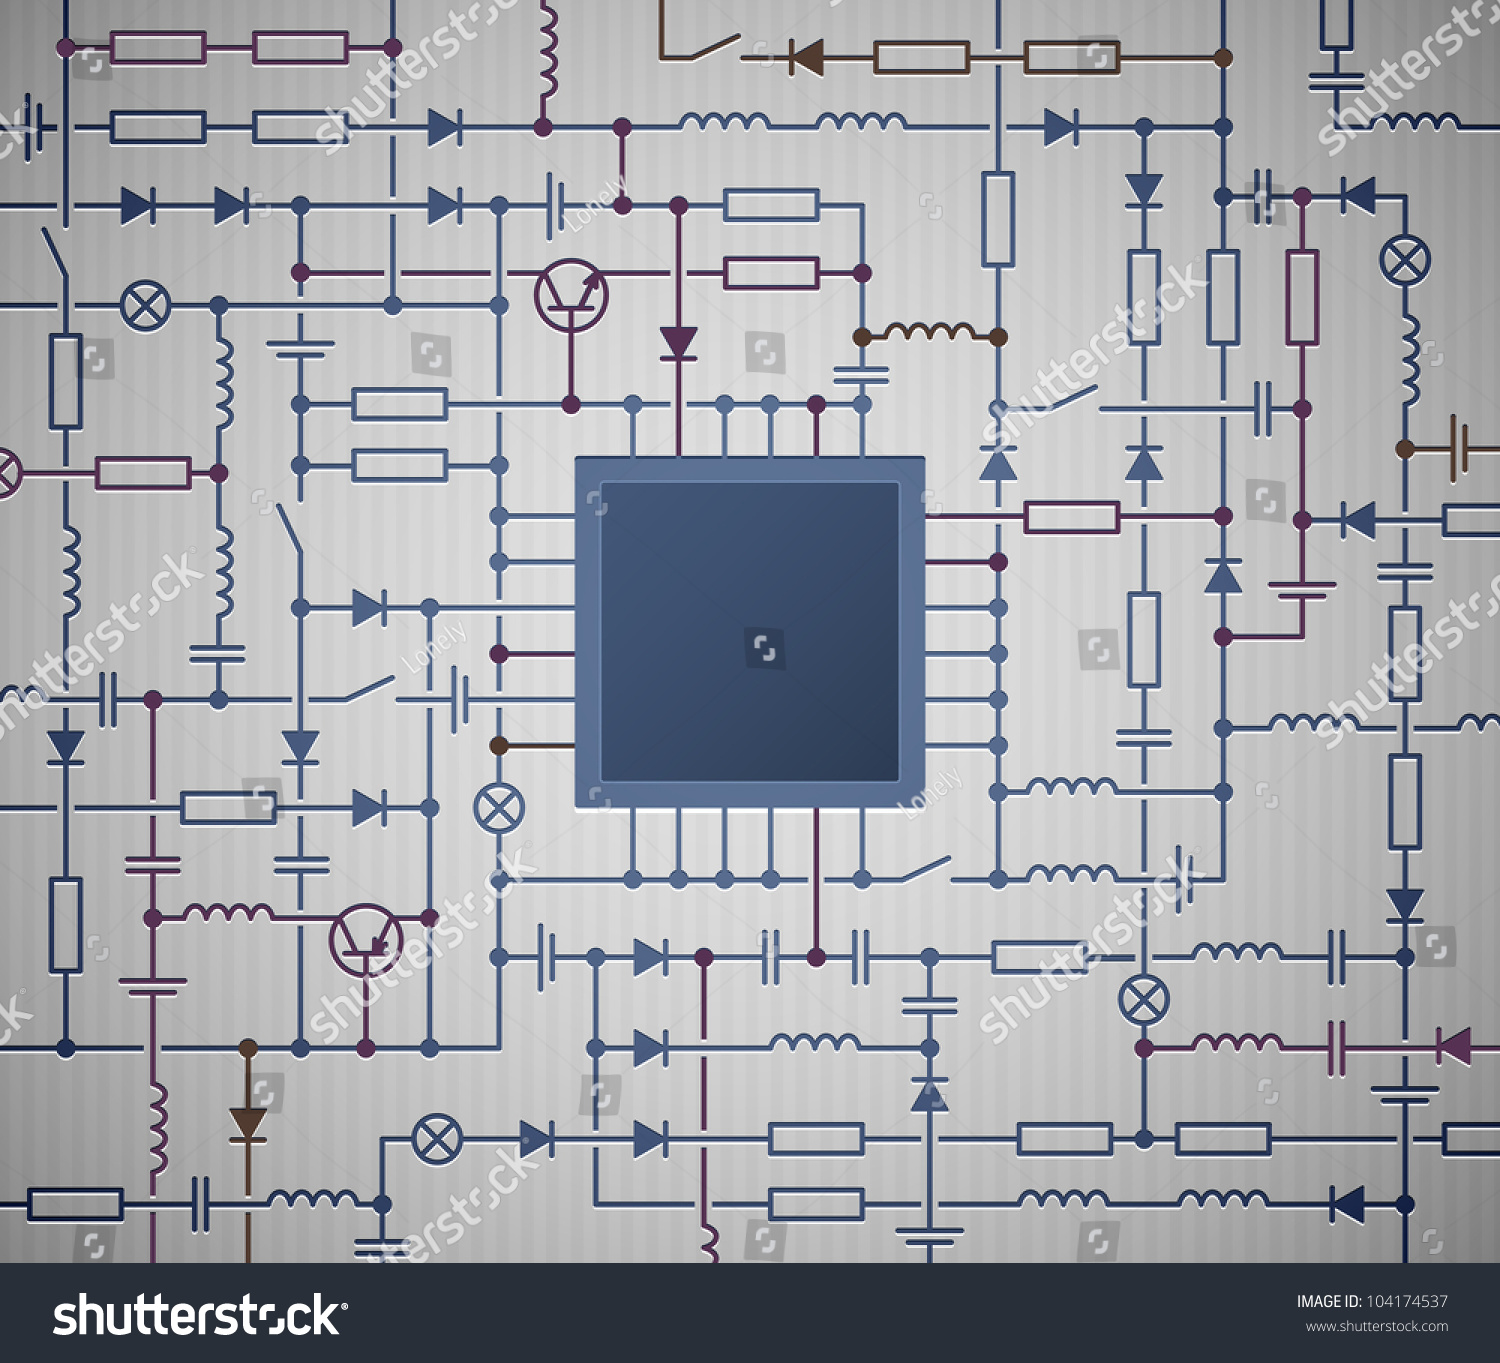 Schematic For A Processor Experts Of Wiring Diagram Electric In Addition Jackson Emg Pickups Diagrams Background Electrical Circuit Stock Vector Rh Shutterstock Com Pentium Schematics